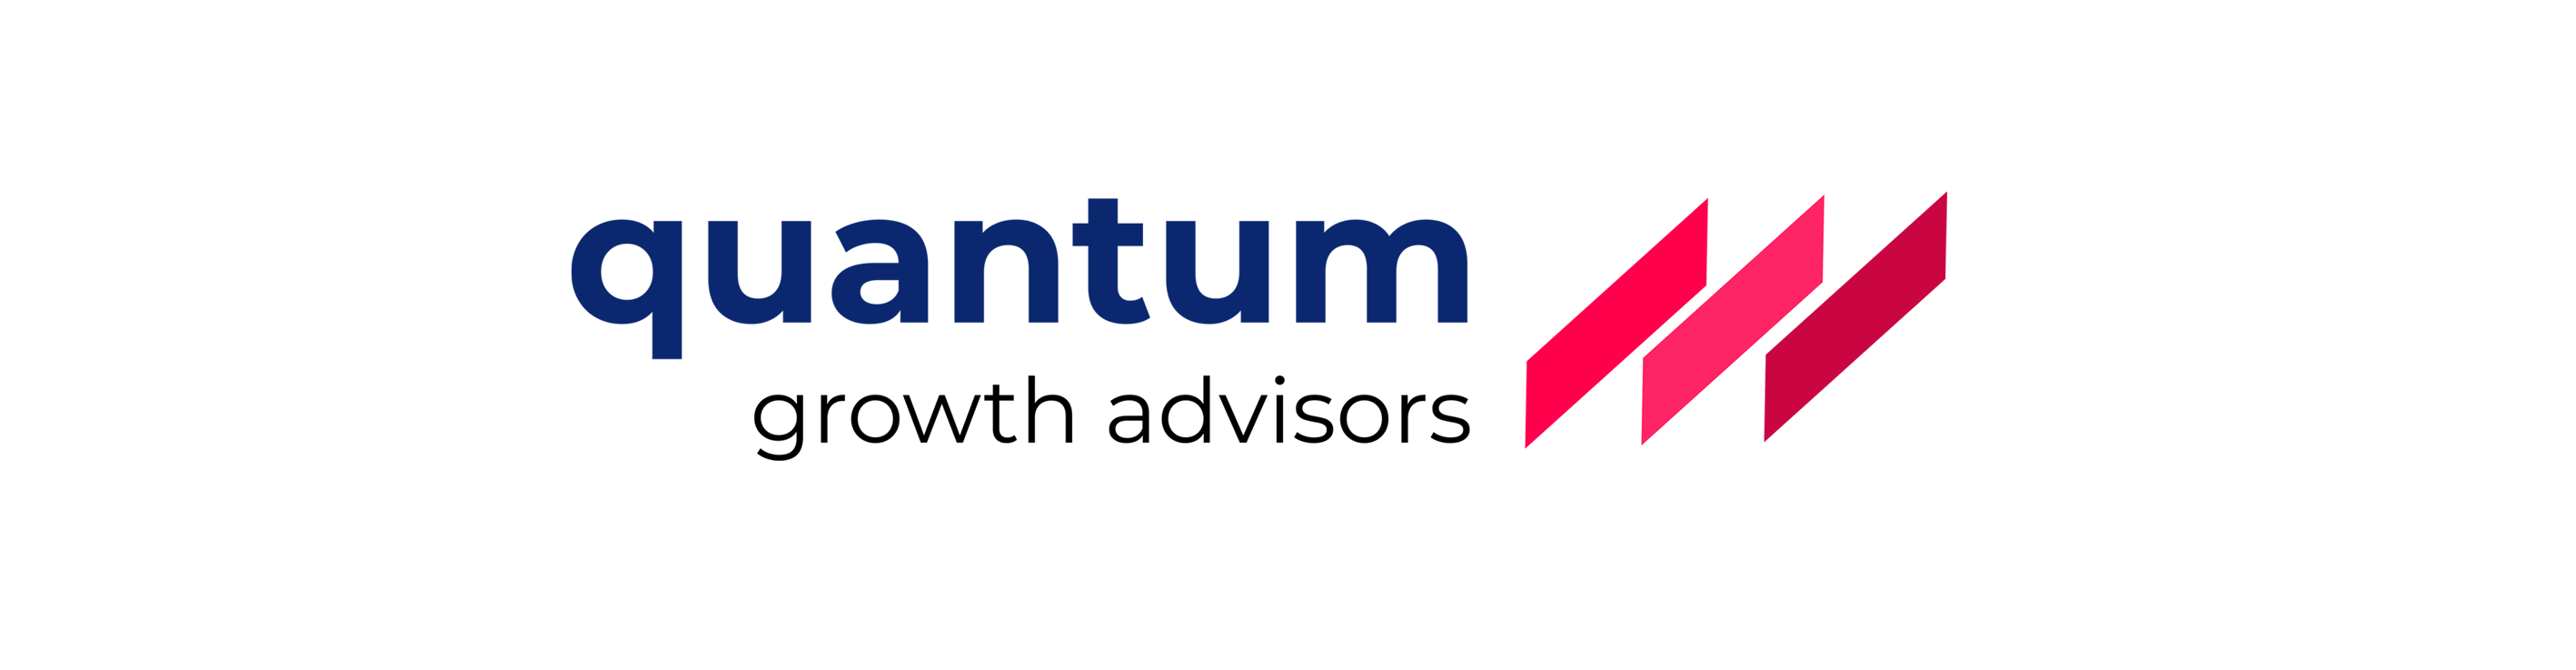 Quantum Growth Advisors